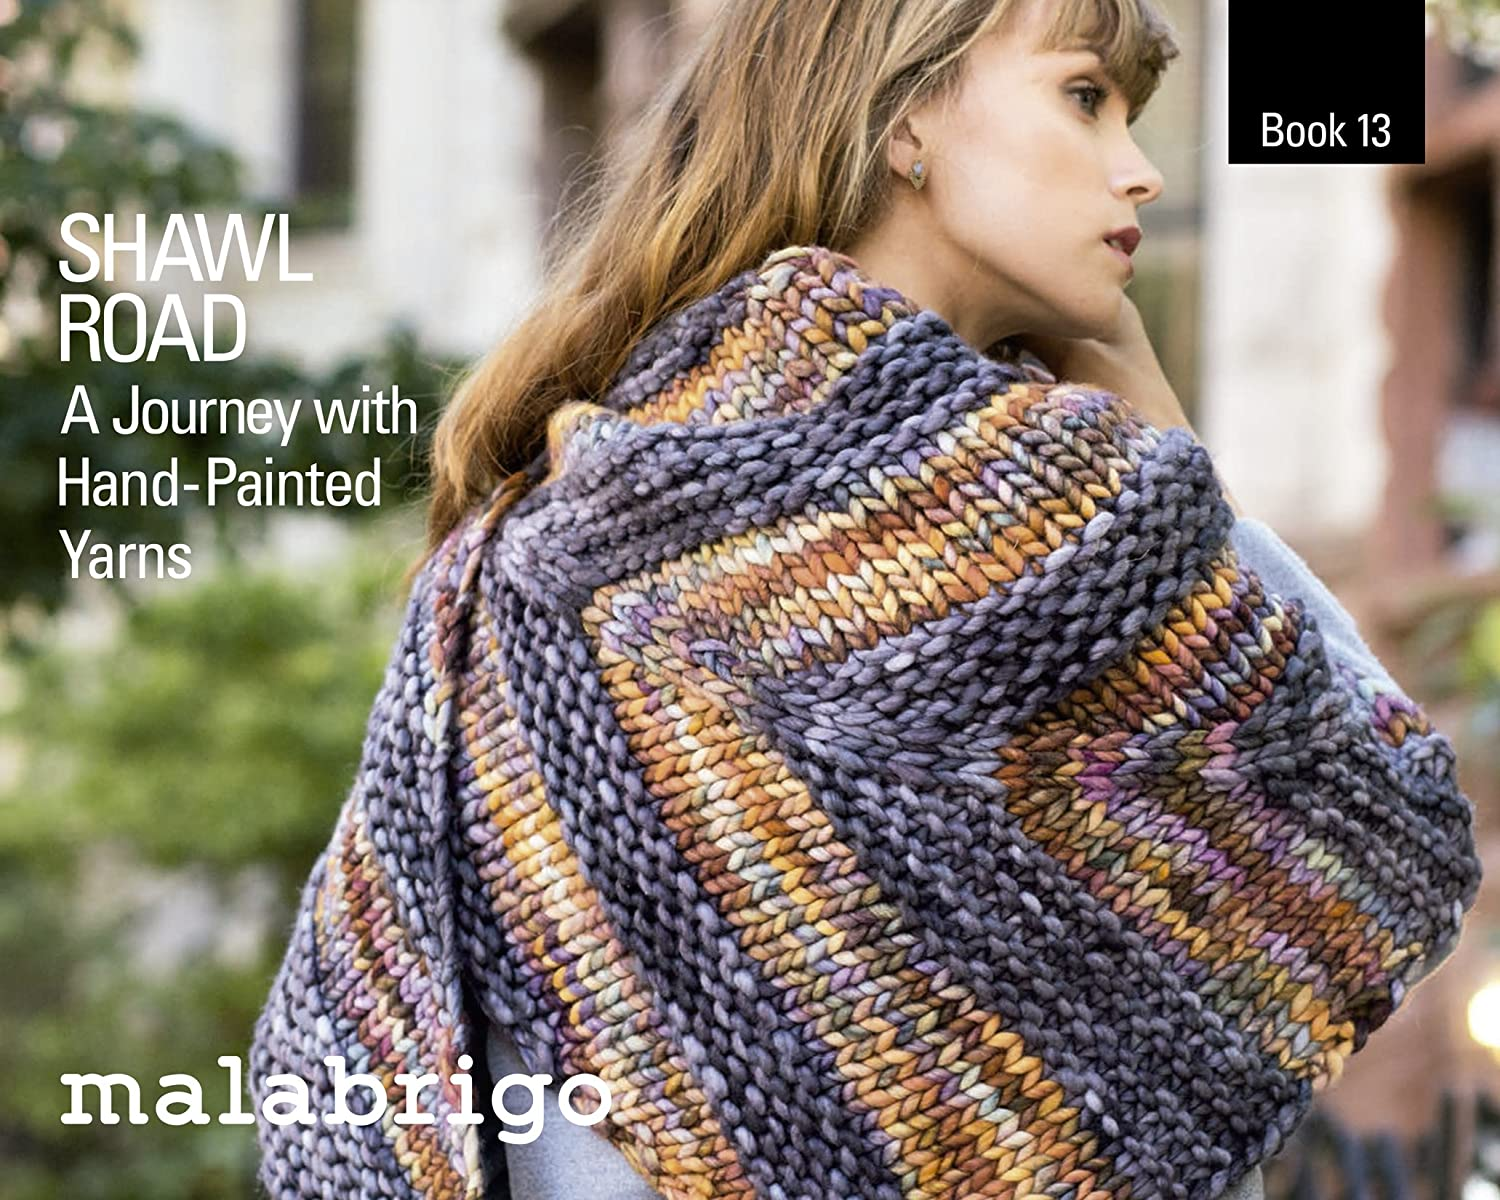 Malabrigo Book 13, Shawl Road 4336925391